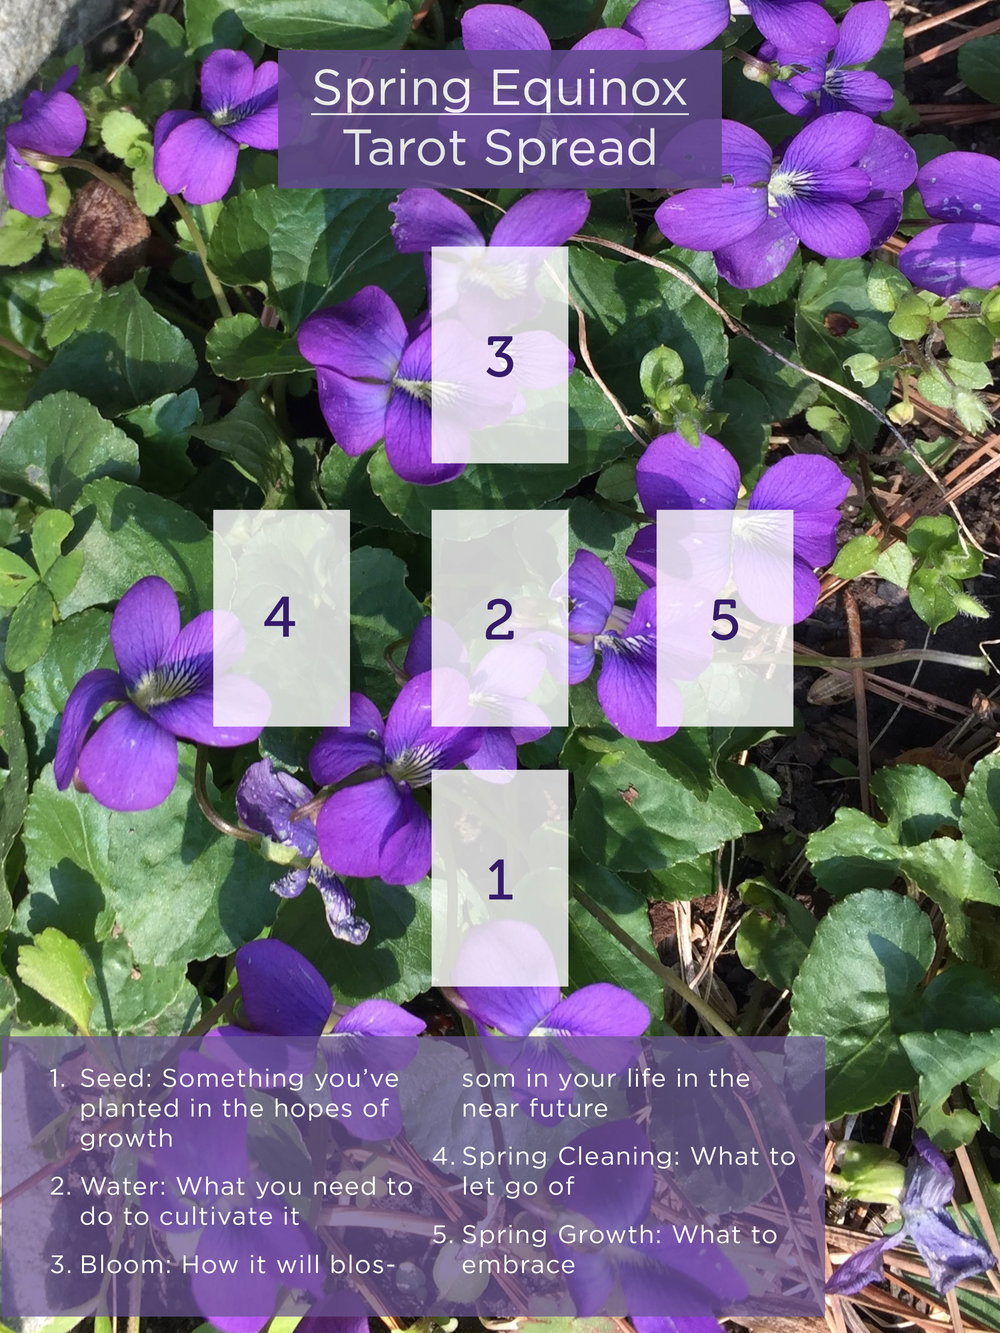 Spring Equinox Ostara Tarot Spread for Growth and Self-Care